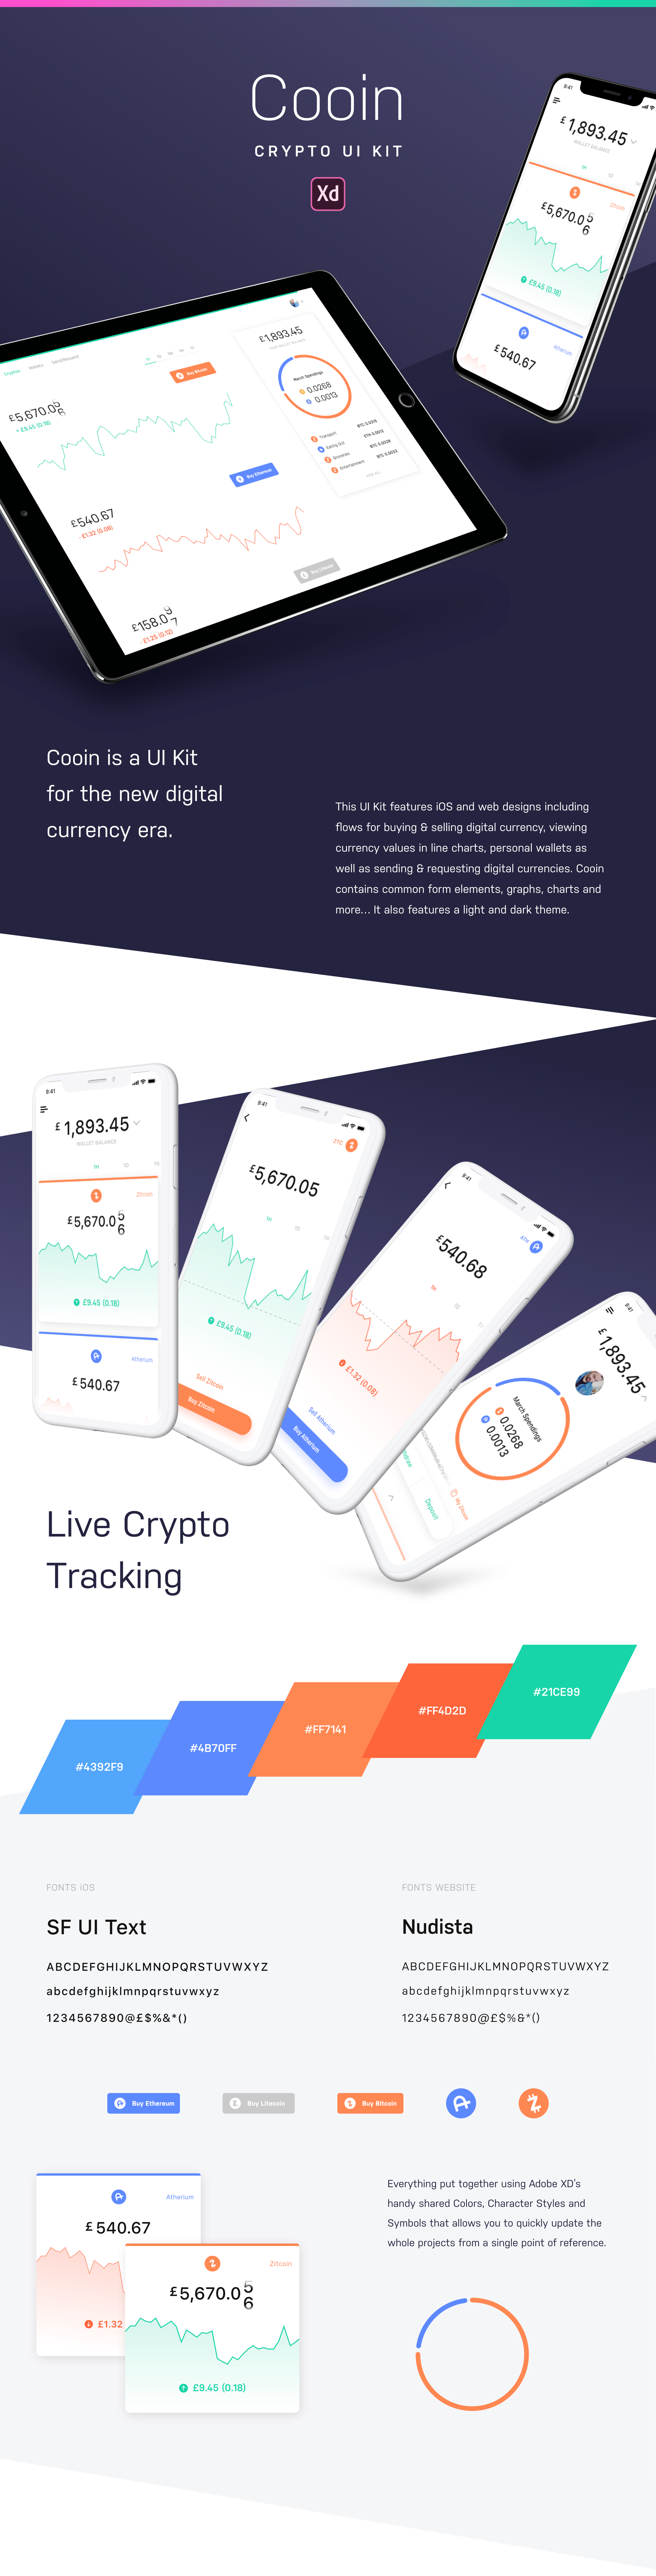 Cooin Crypto UI Kit for Adobe XD - Cooin UI Kit features iOS and web designs including flows for buying & selling digital currency, viewing currency values in line charts, personal wallets as well as sending & requesting digital currencies. Cooin contains common form elements, graphs, charts and more… It also features a light and dark theme.